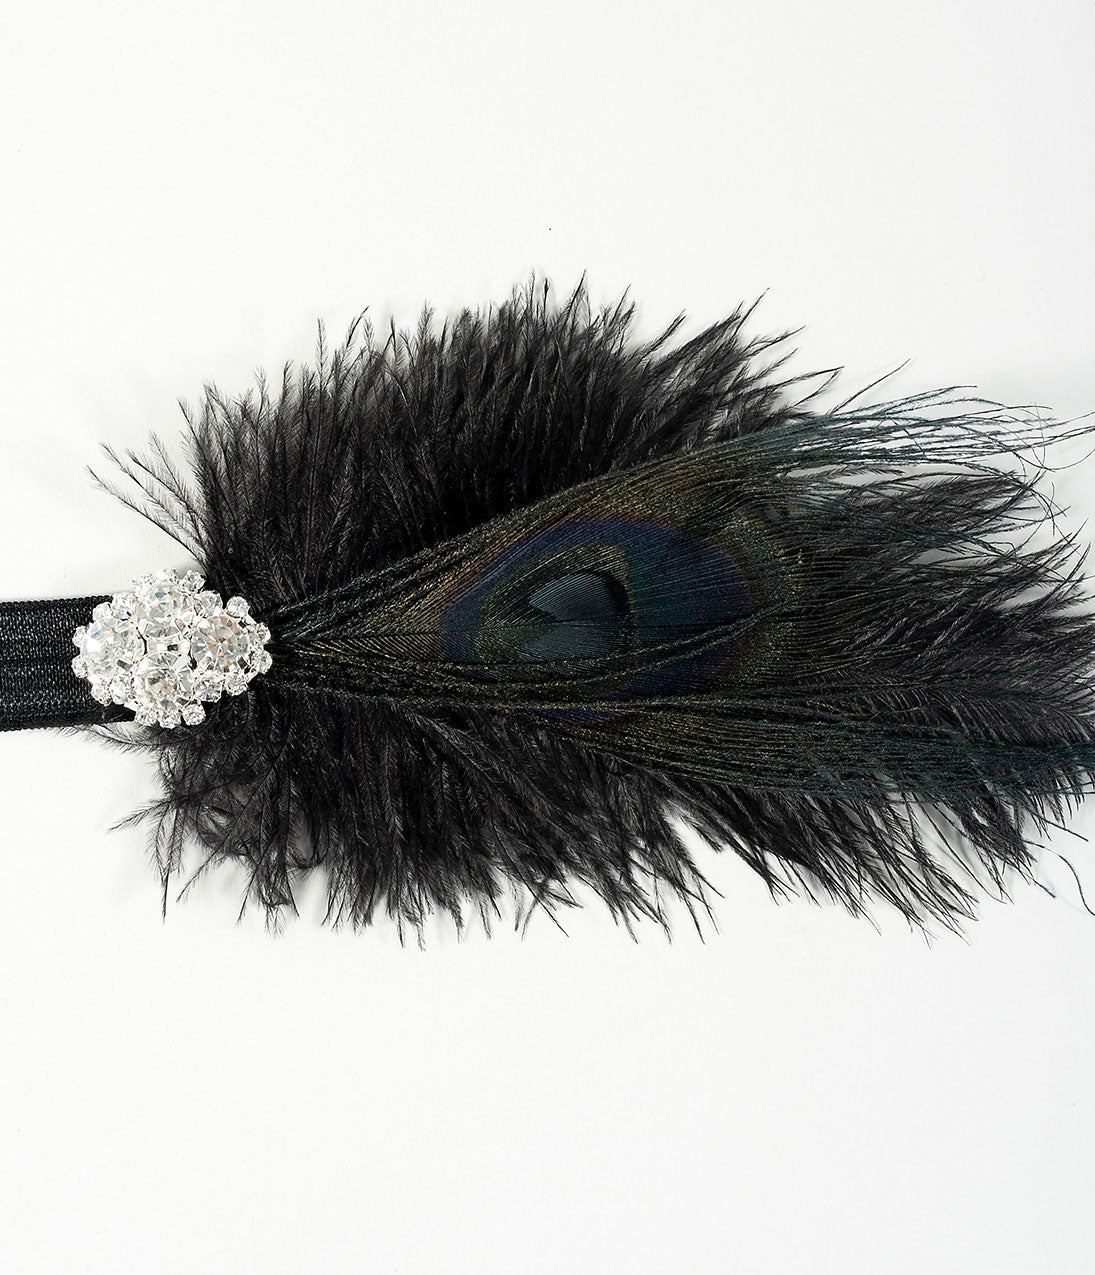 Vintage Hair Accessories: Combs, Headbands, Flowers, Scarf, Wigs 1920s Style Black Peacock Feather Crystal Ava Headband $32.00 AT vintagedancer.com